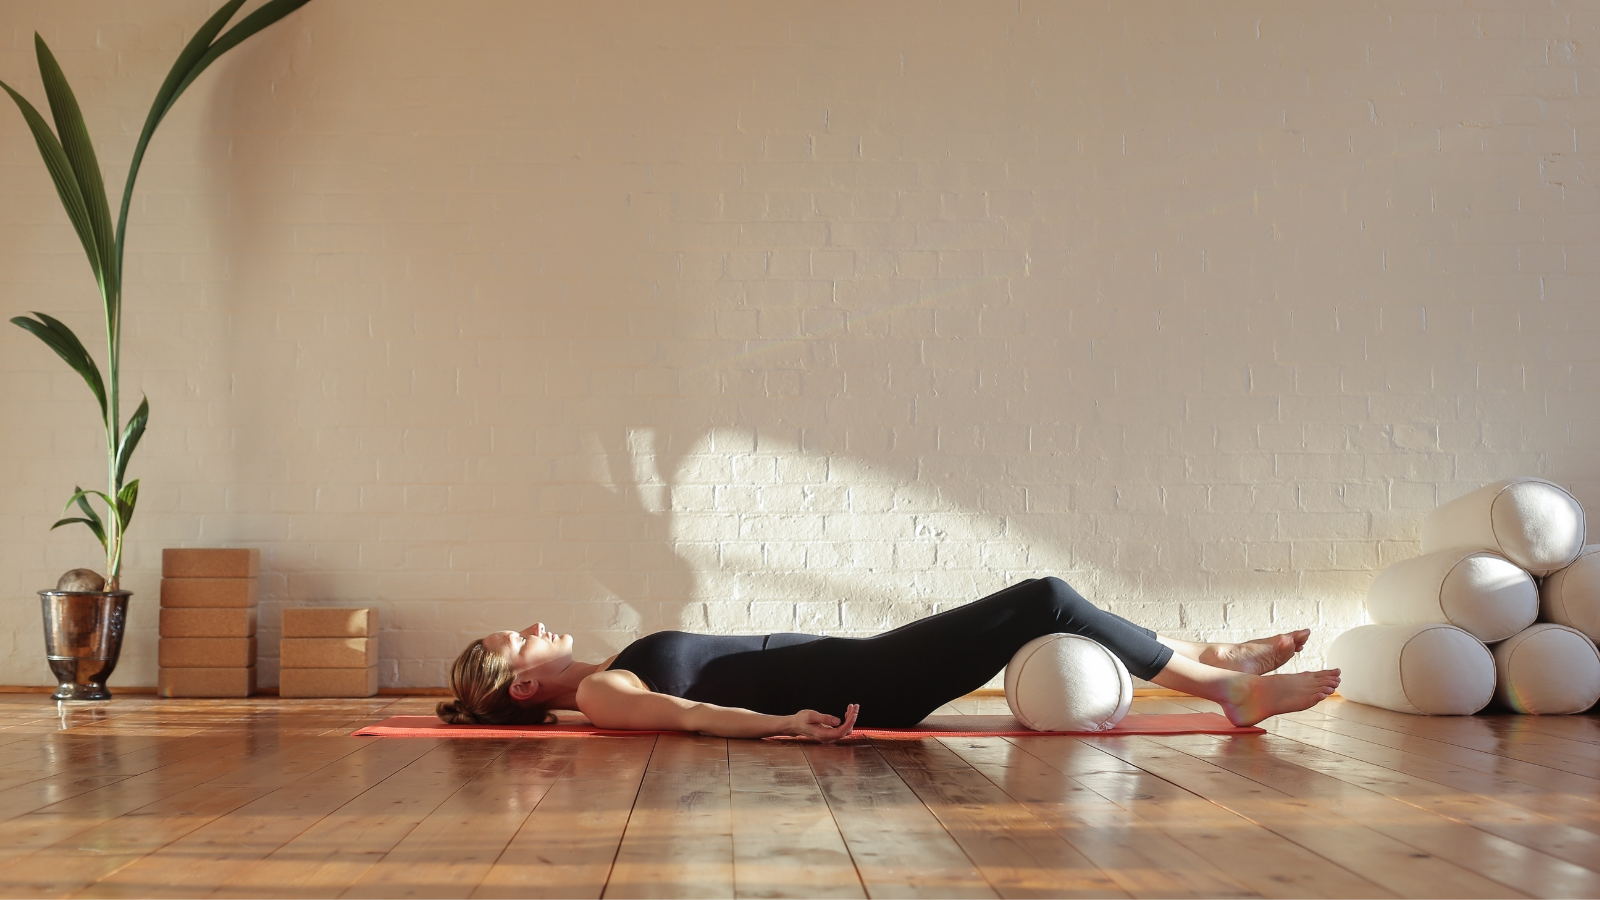 Yoga teaching tips for closing meditation practice in Savasana Pose sequence for grief